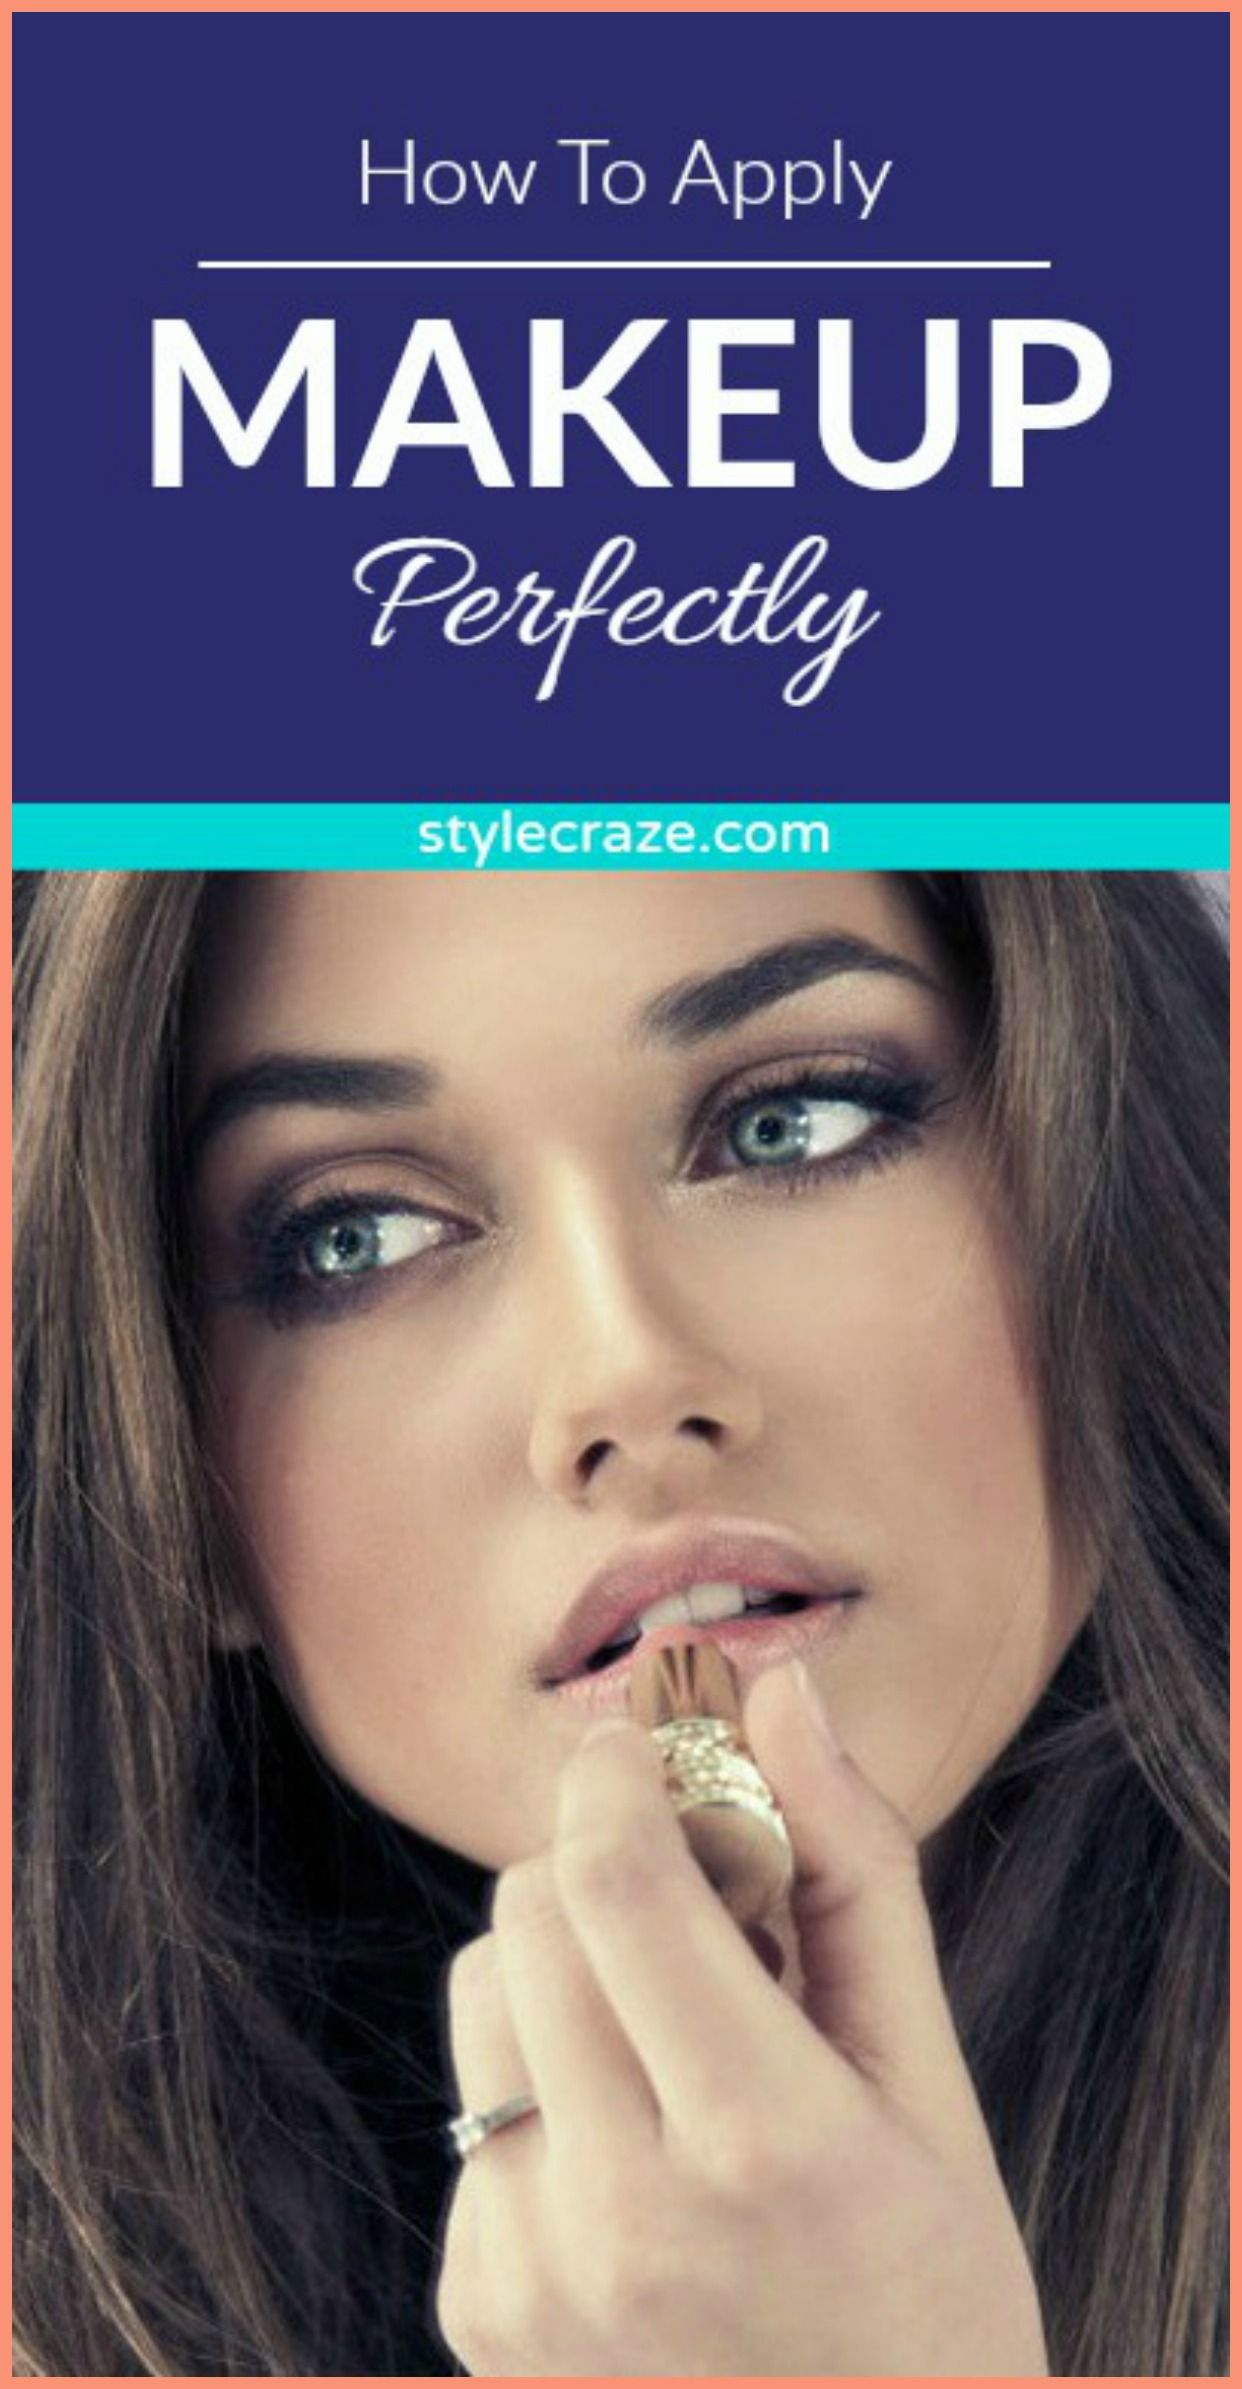 How To Apply Makeup Like A Pro How to apply makeup